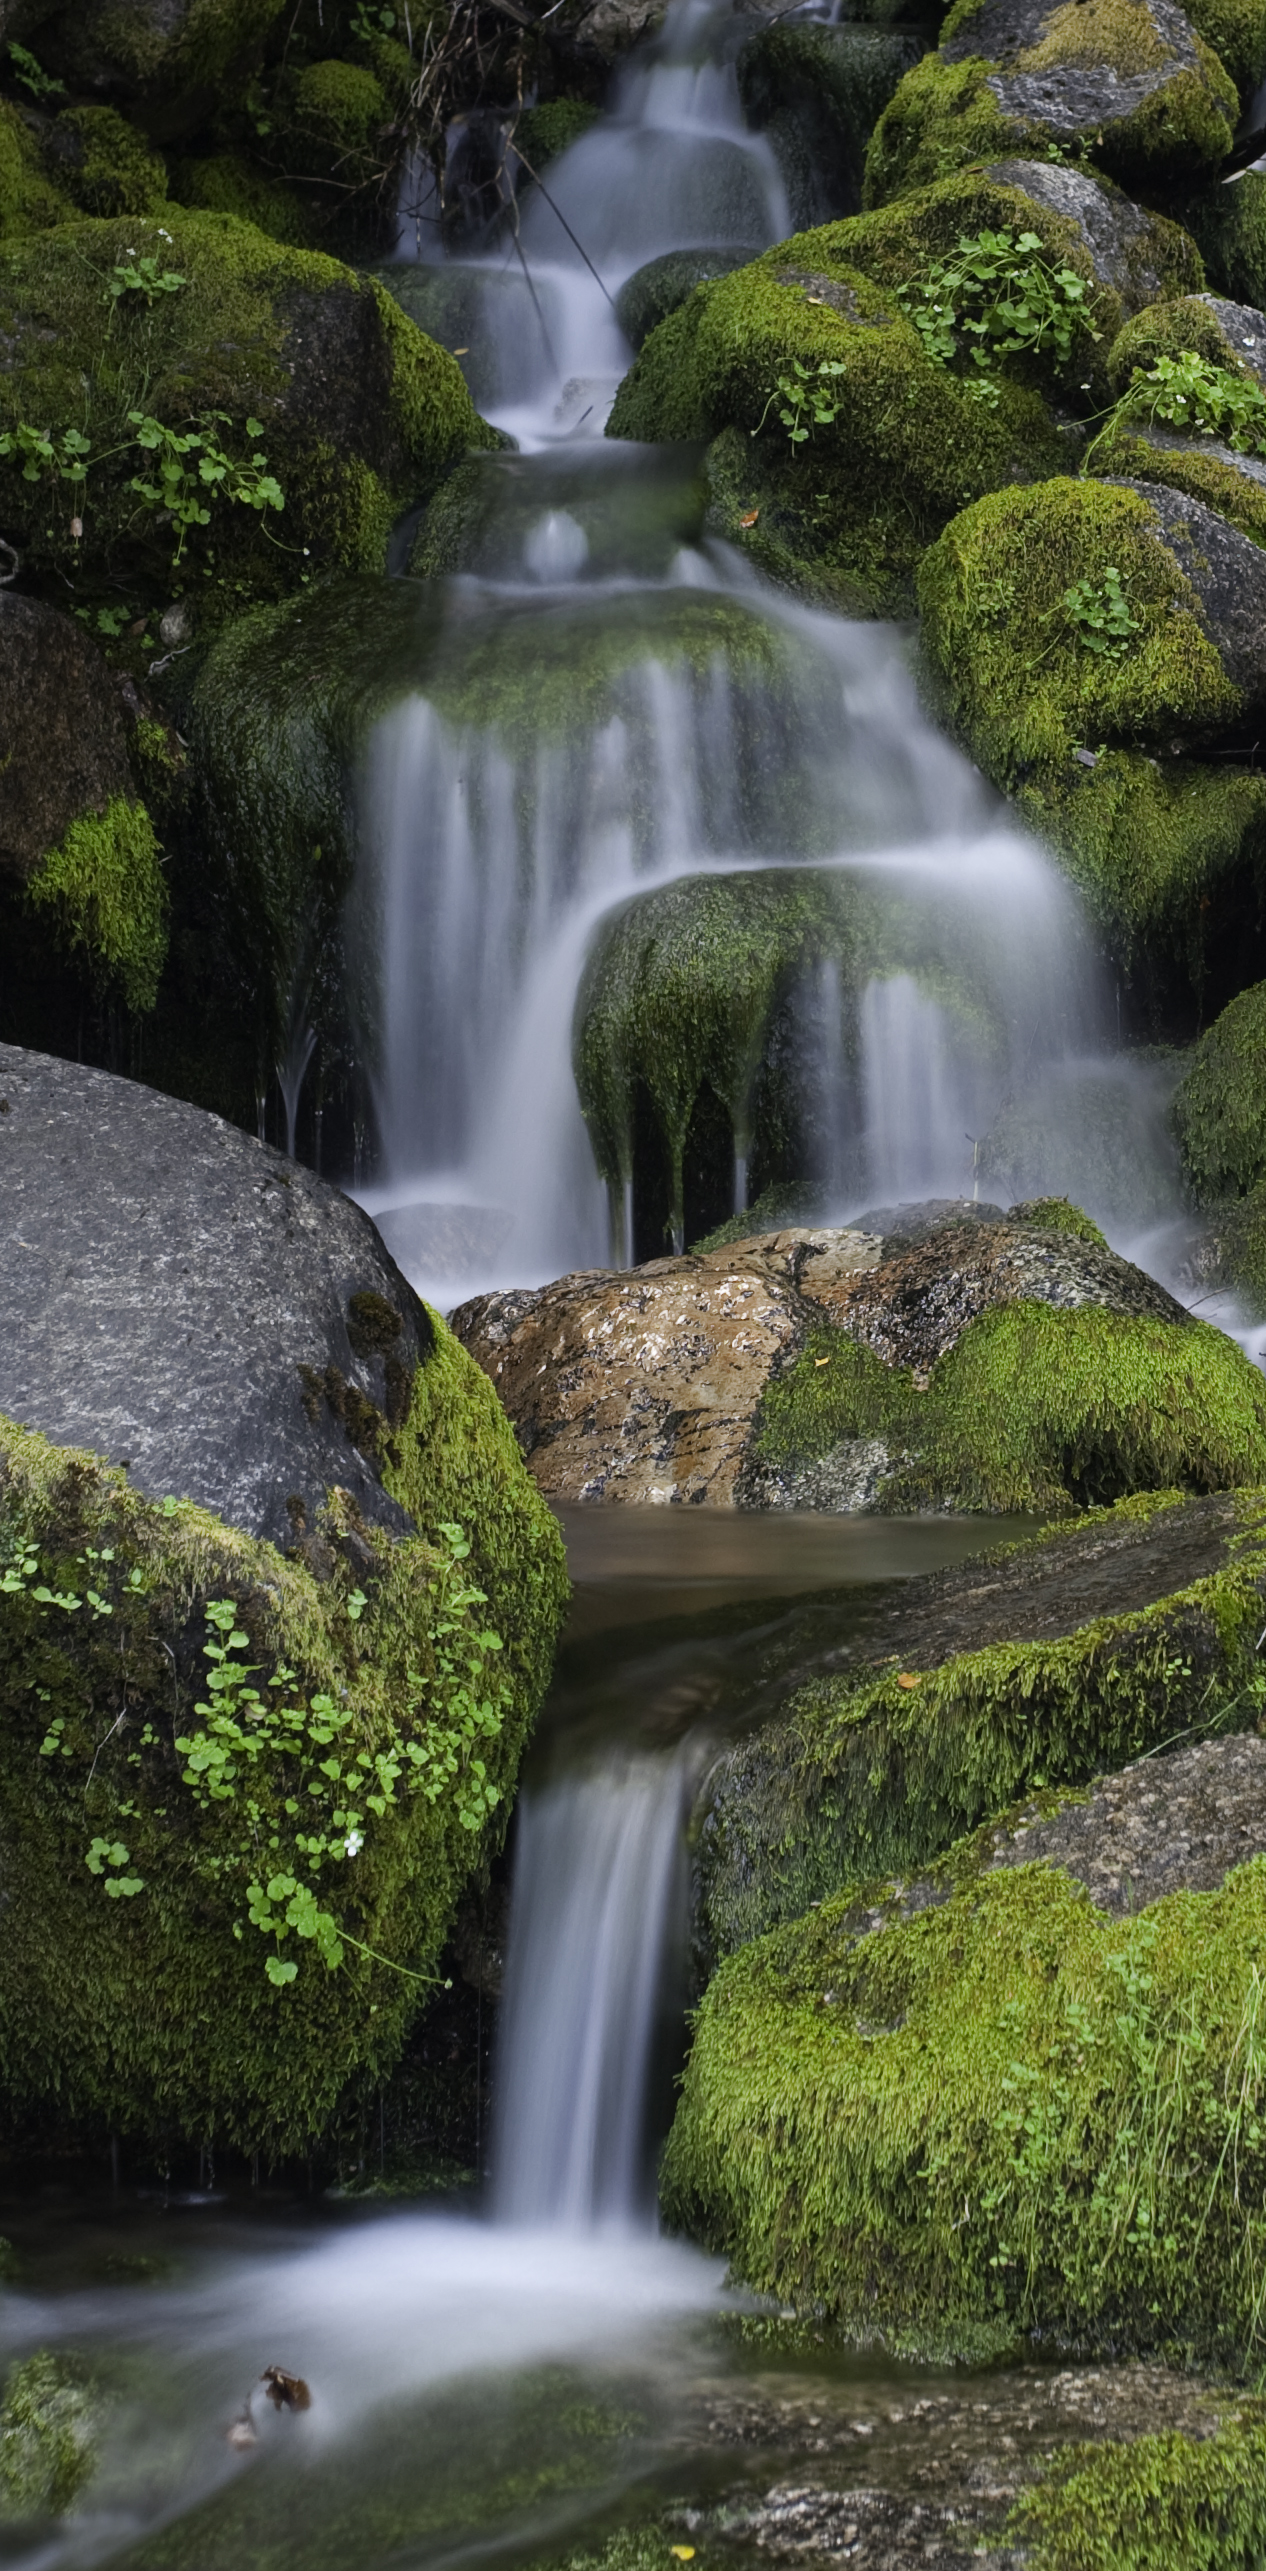 waterfall_moss_rocks_0114crop.jpg